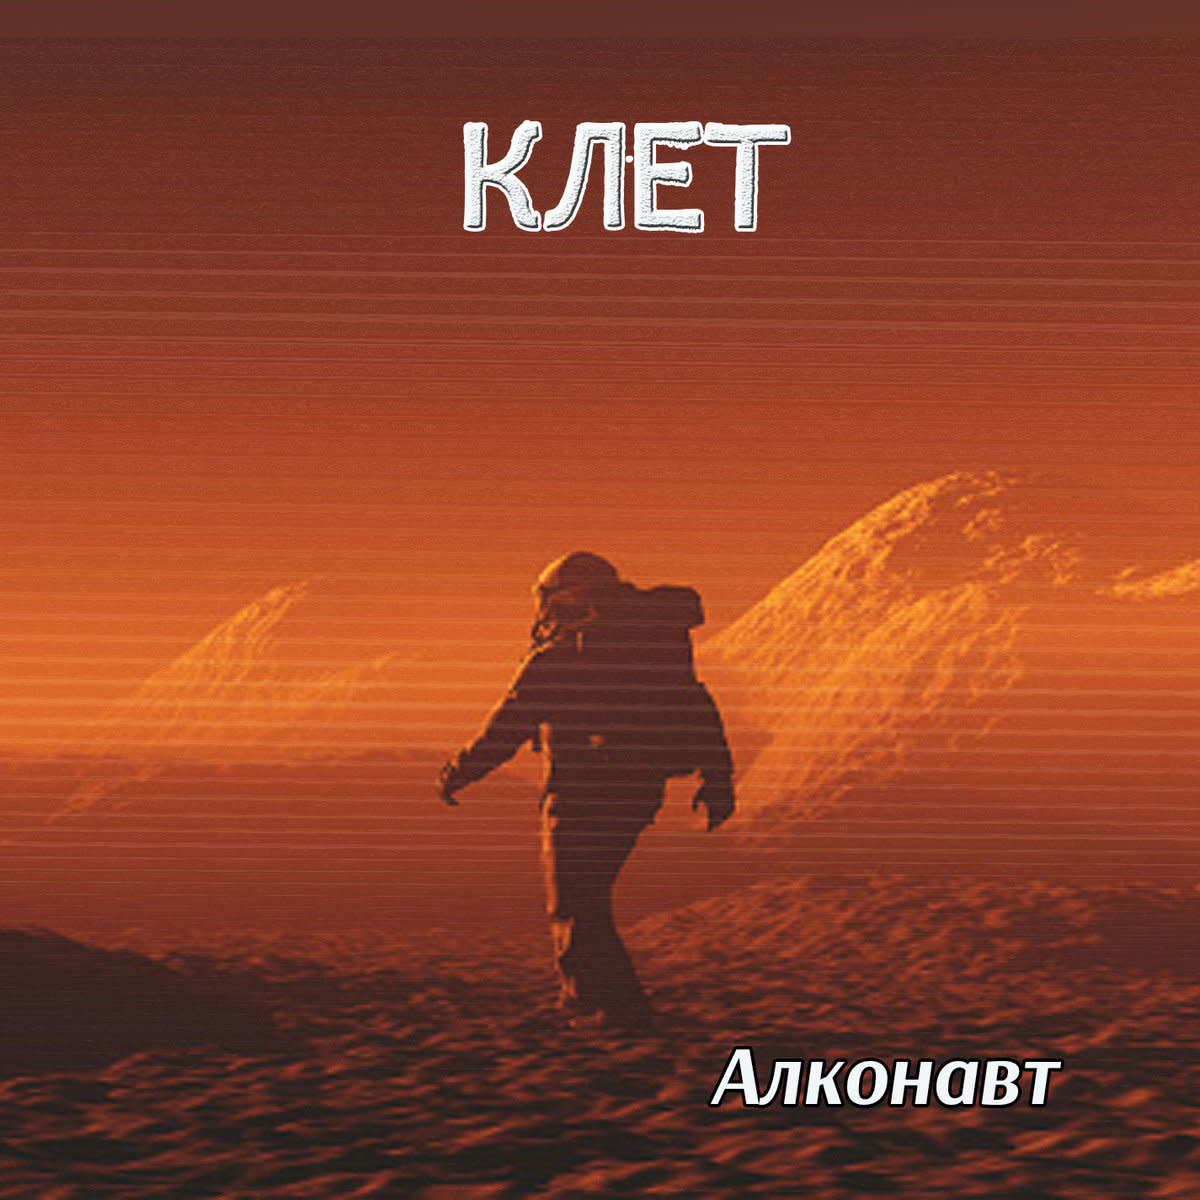 synth-album-review-alconaut-by-klet